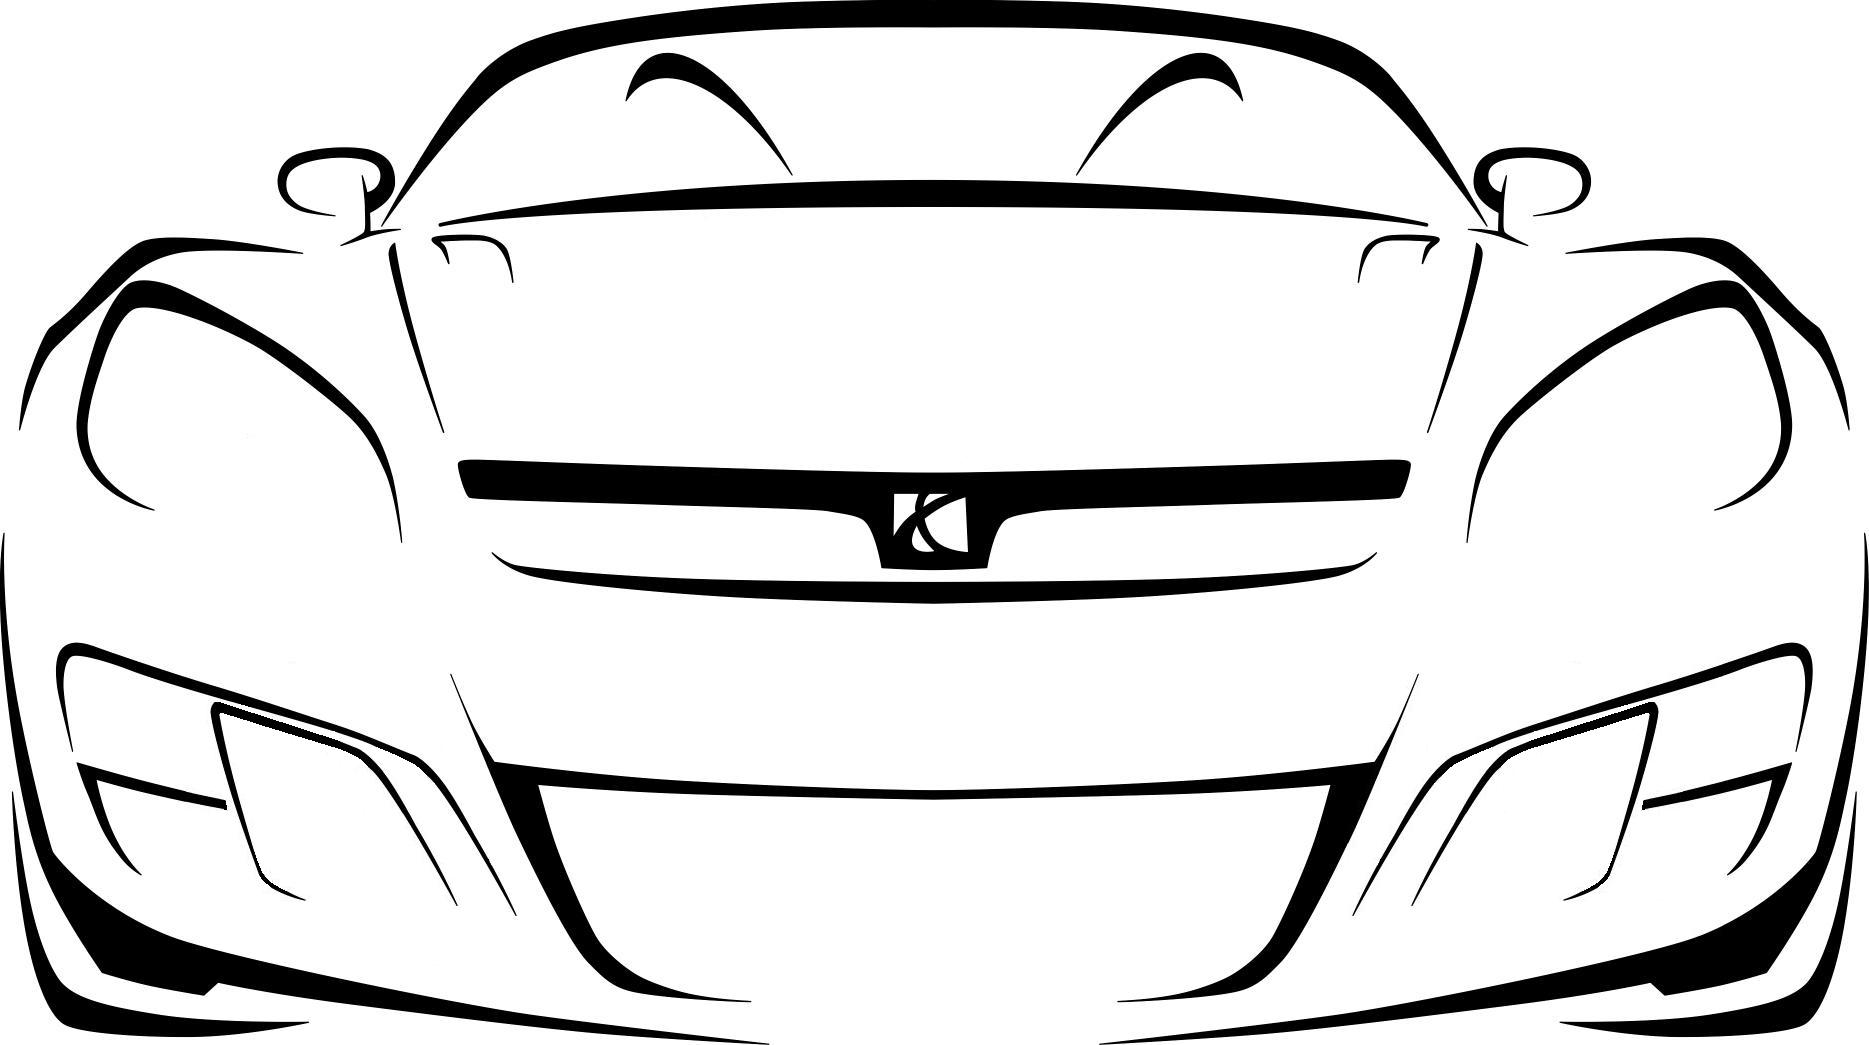 car logo clip art free - photo #23